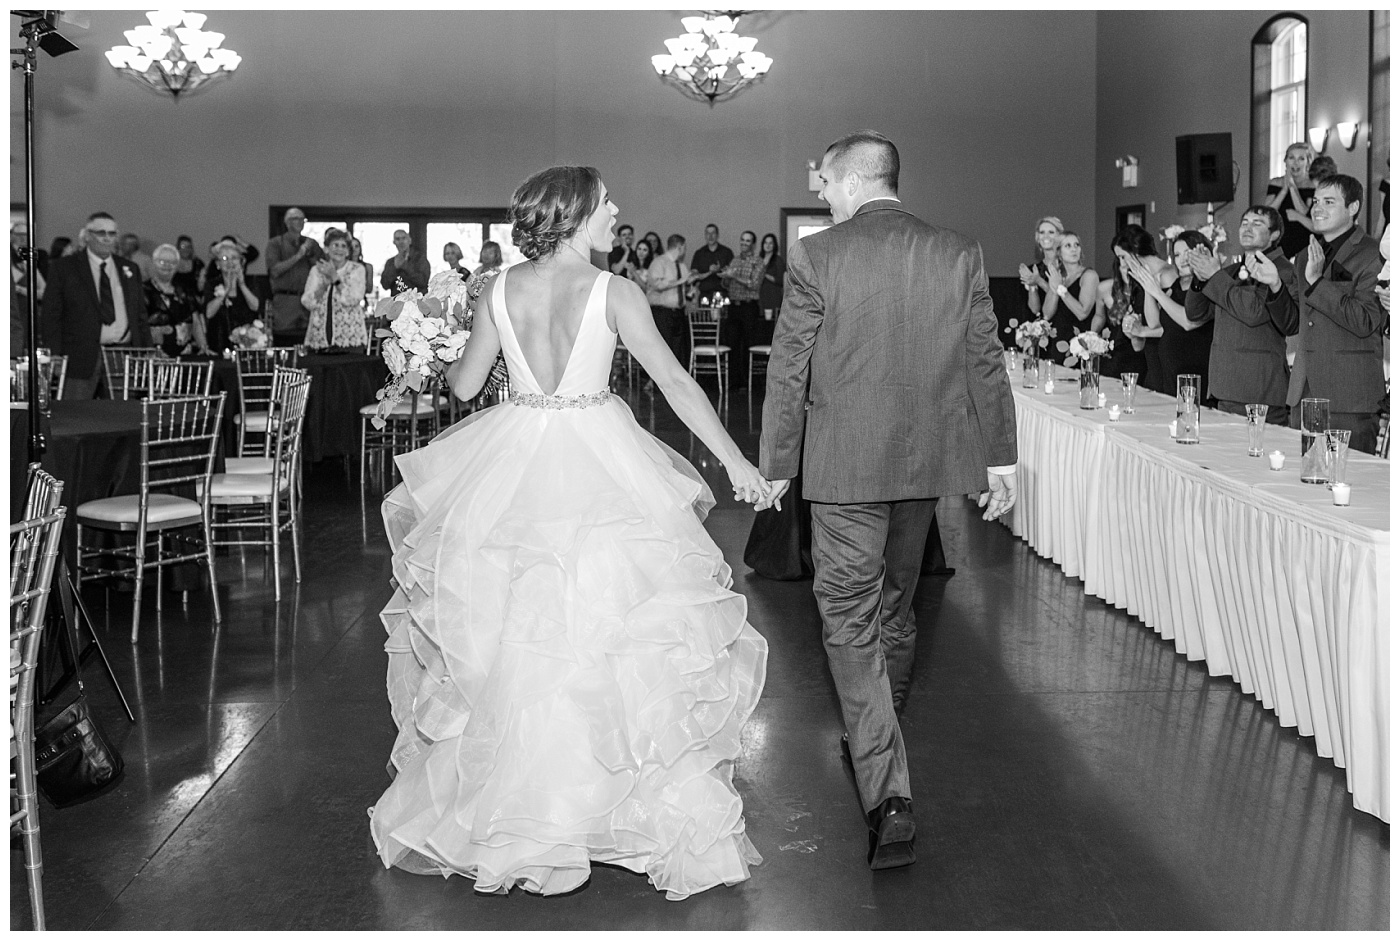 Stephanie Marie Photography Newman Catholic Center Ceremony Bella Sala Reception Tiffin Iowa City Wedding Photographer Chelsey Justin Meyers_0039-1.jpg